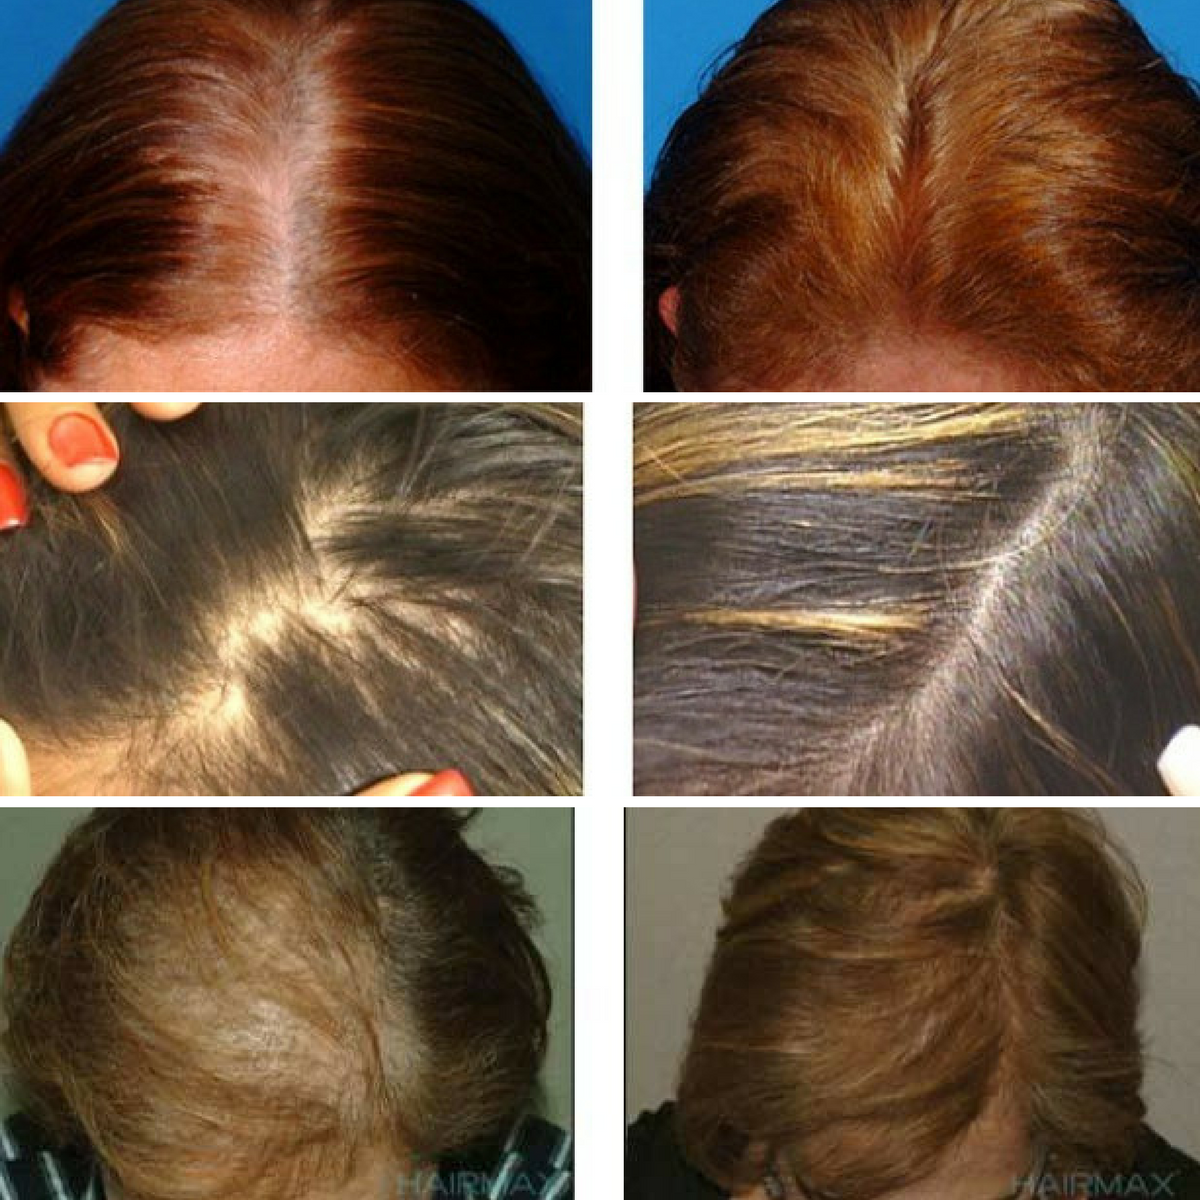 hair regrowth for women before & after